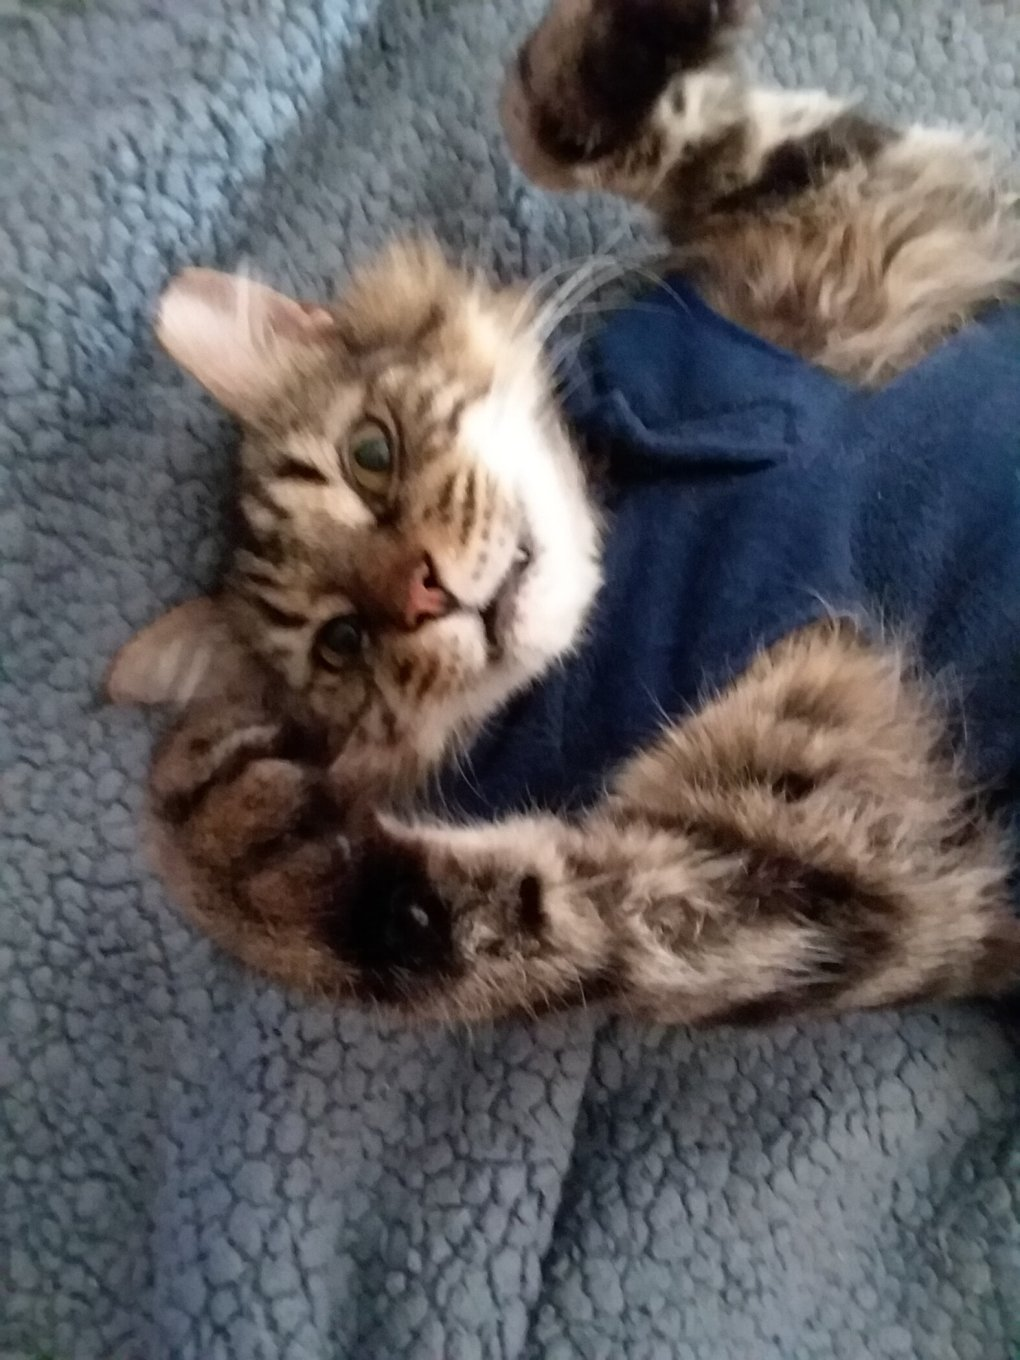 Guest Cat Star: Texas the Maine Coon Mix